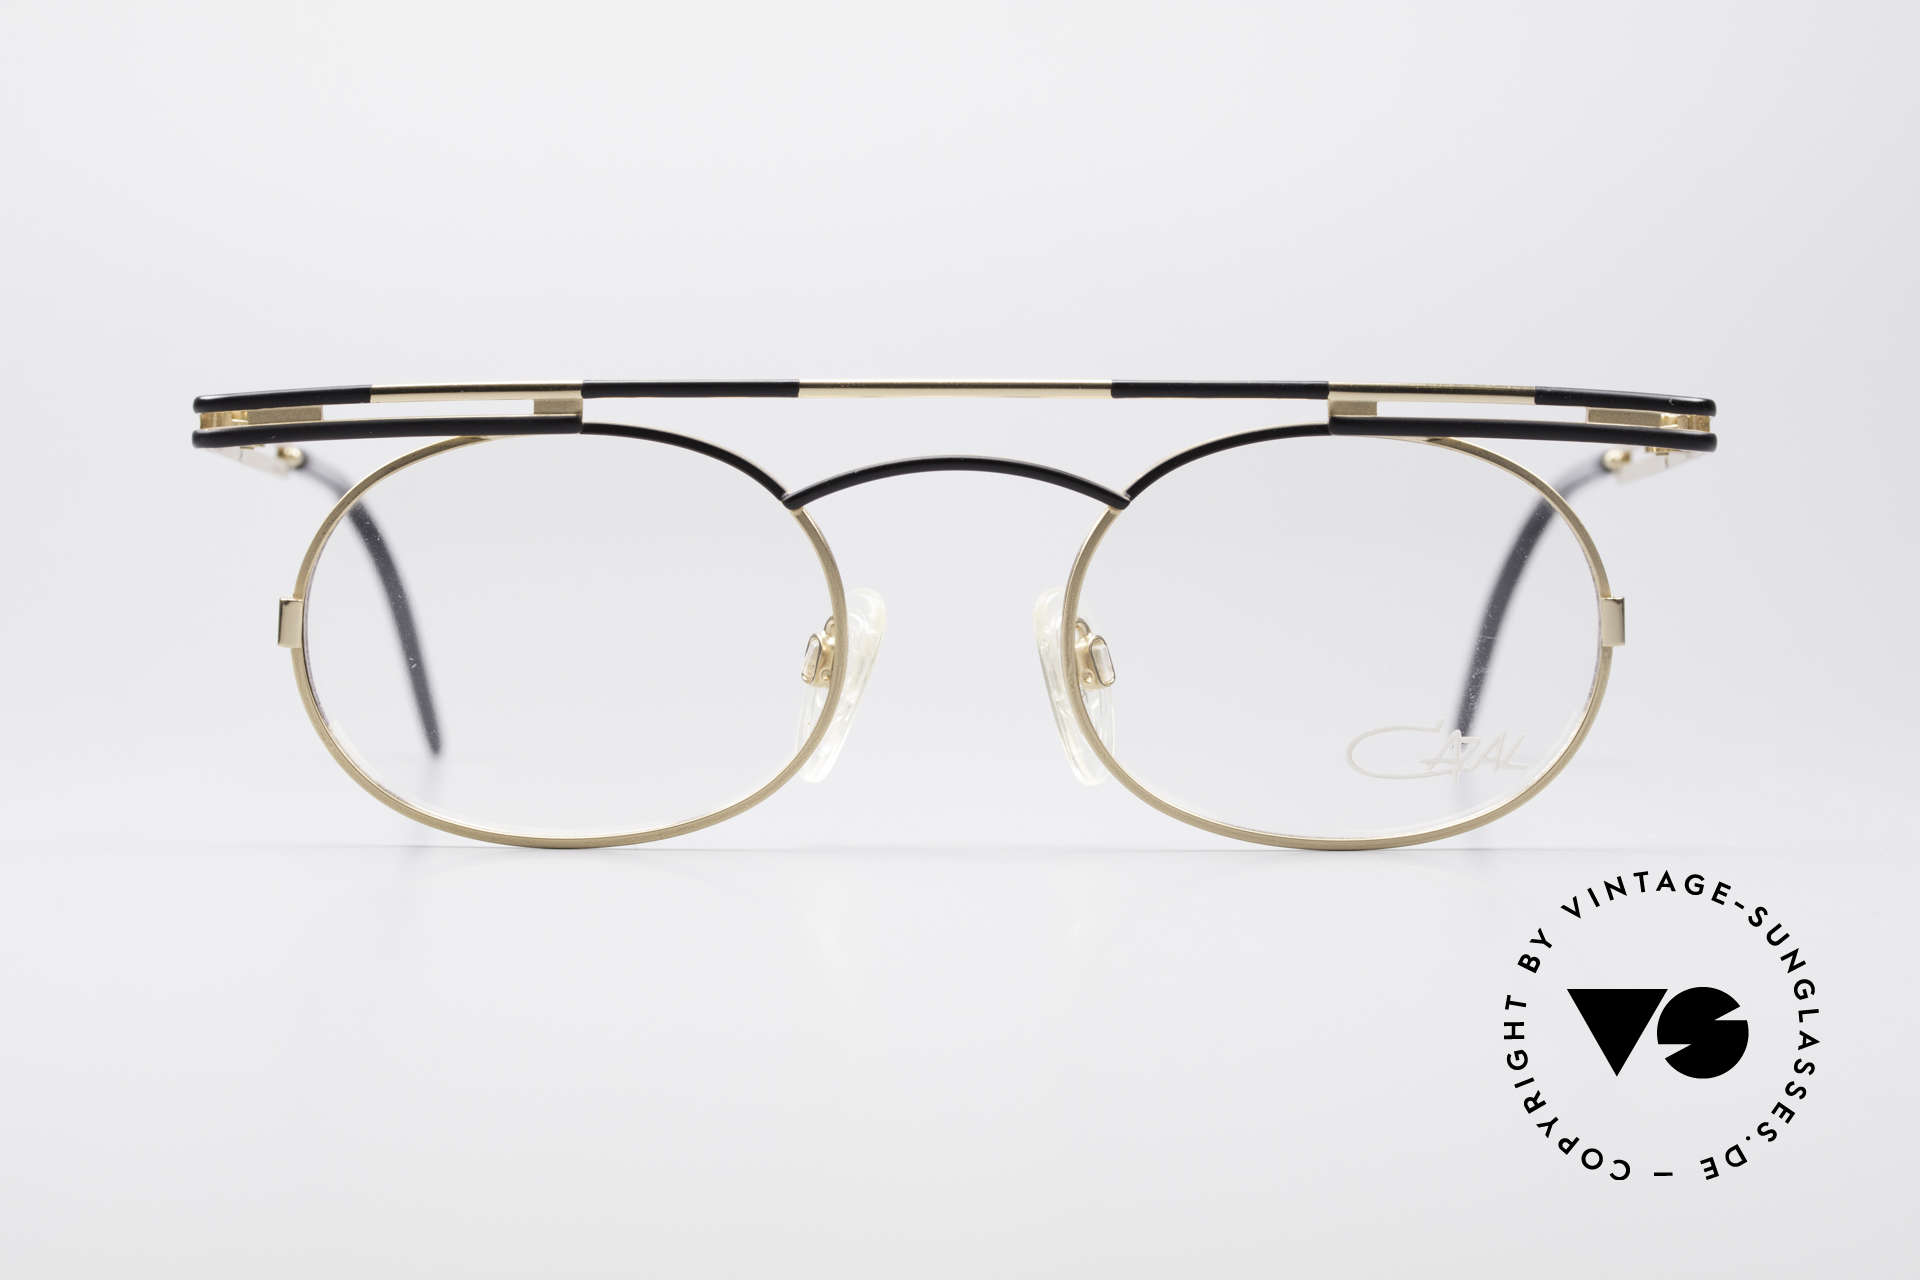 Cazal 761 Vintage Frame NO Retro Glasses, angular & round at the same time; a real eye-catcher, Made for Men and Women